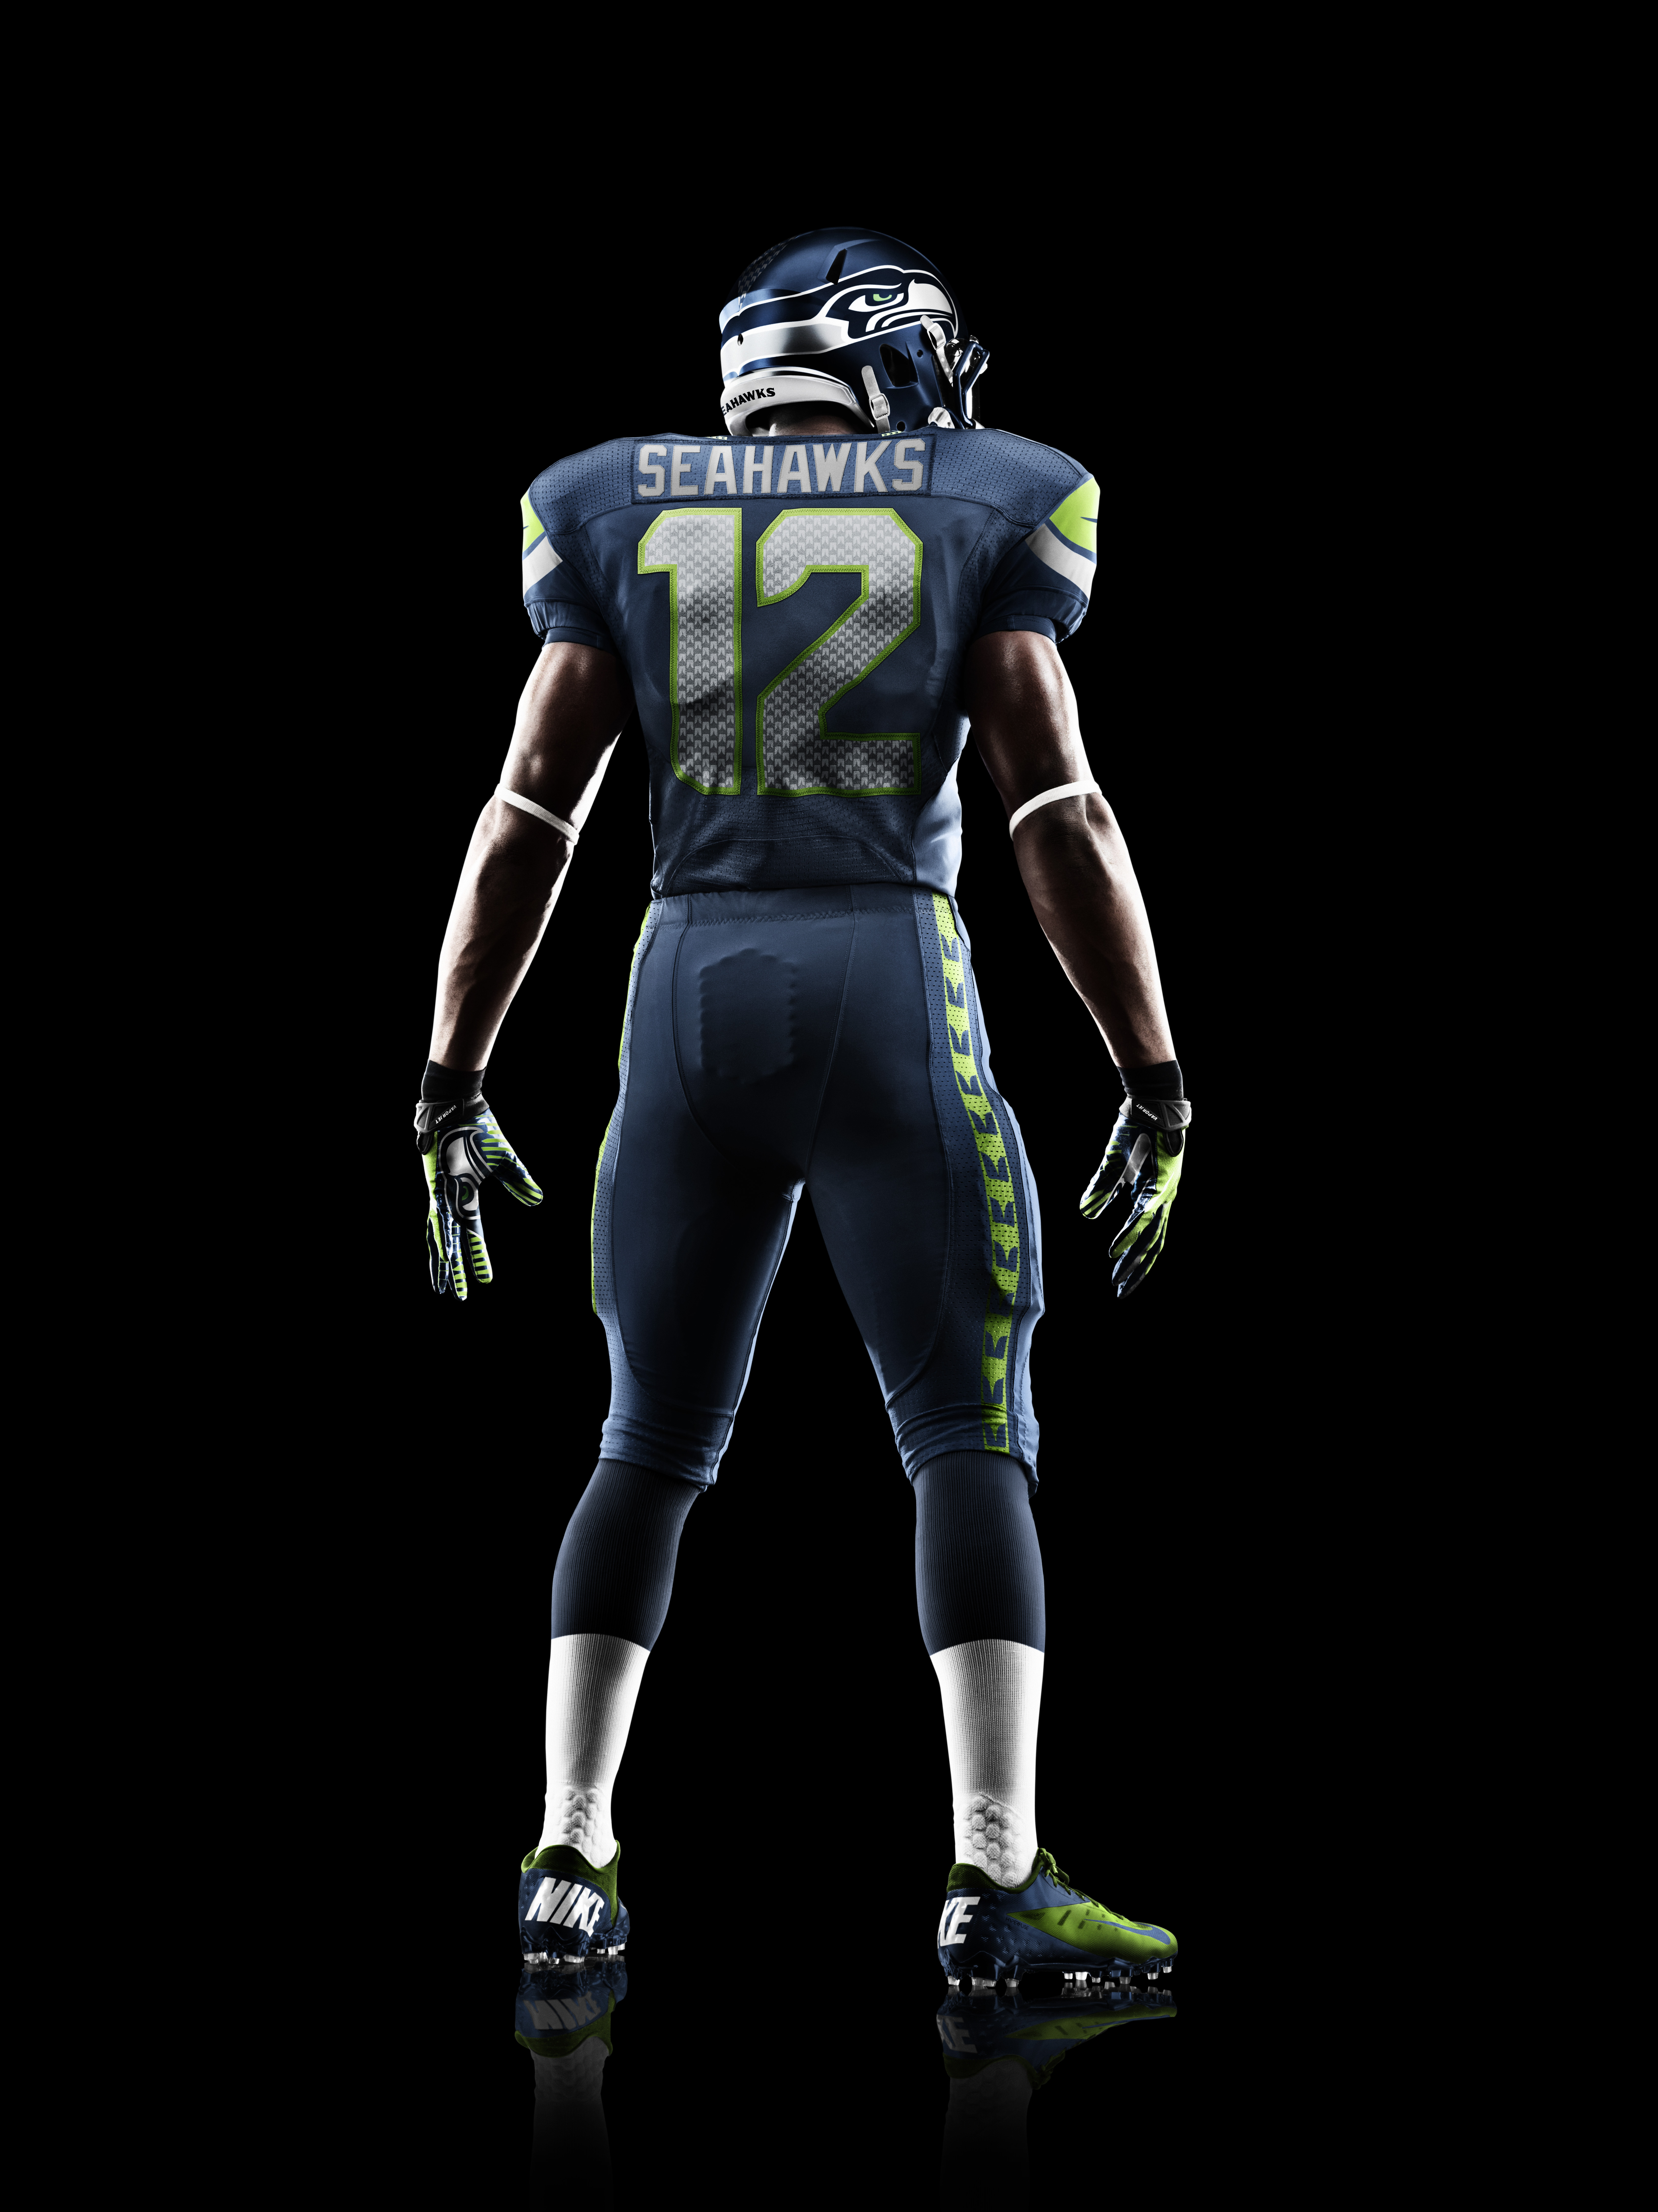 Seattle Seahawks 2012 Nike Football Uniform Nike News